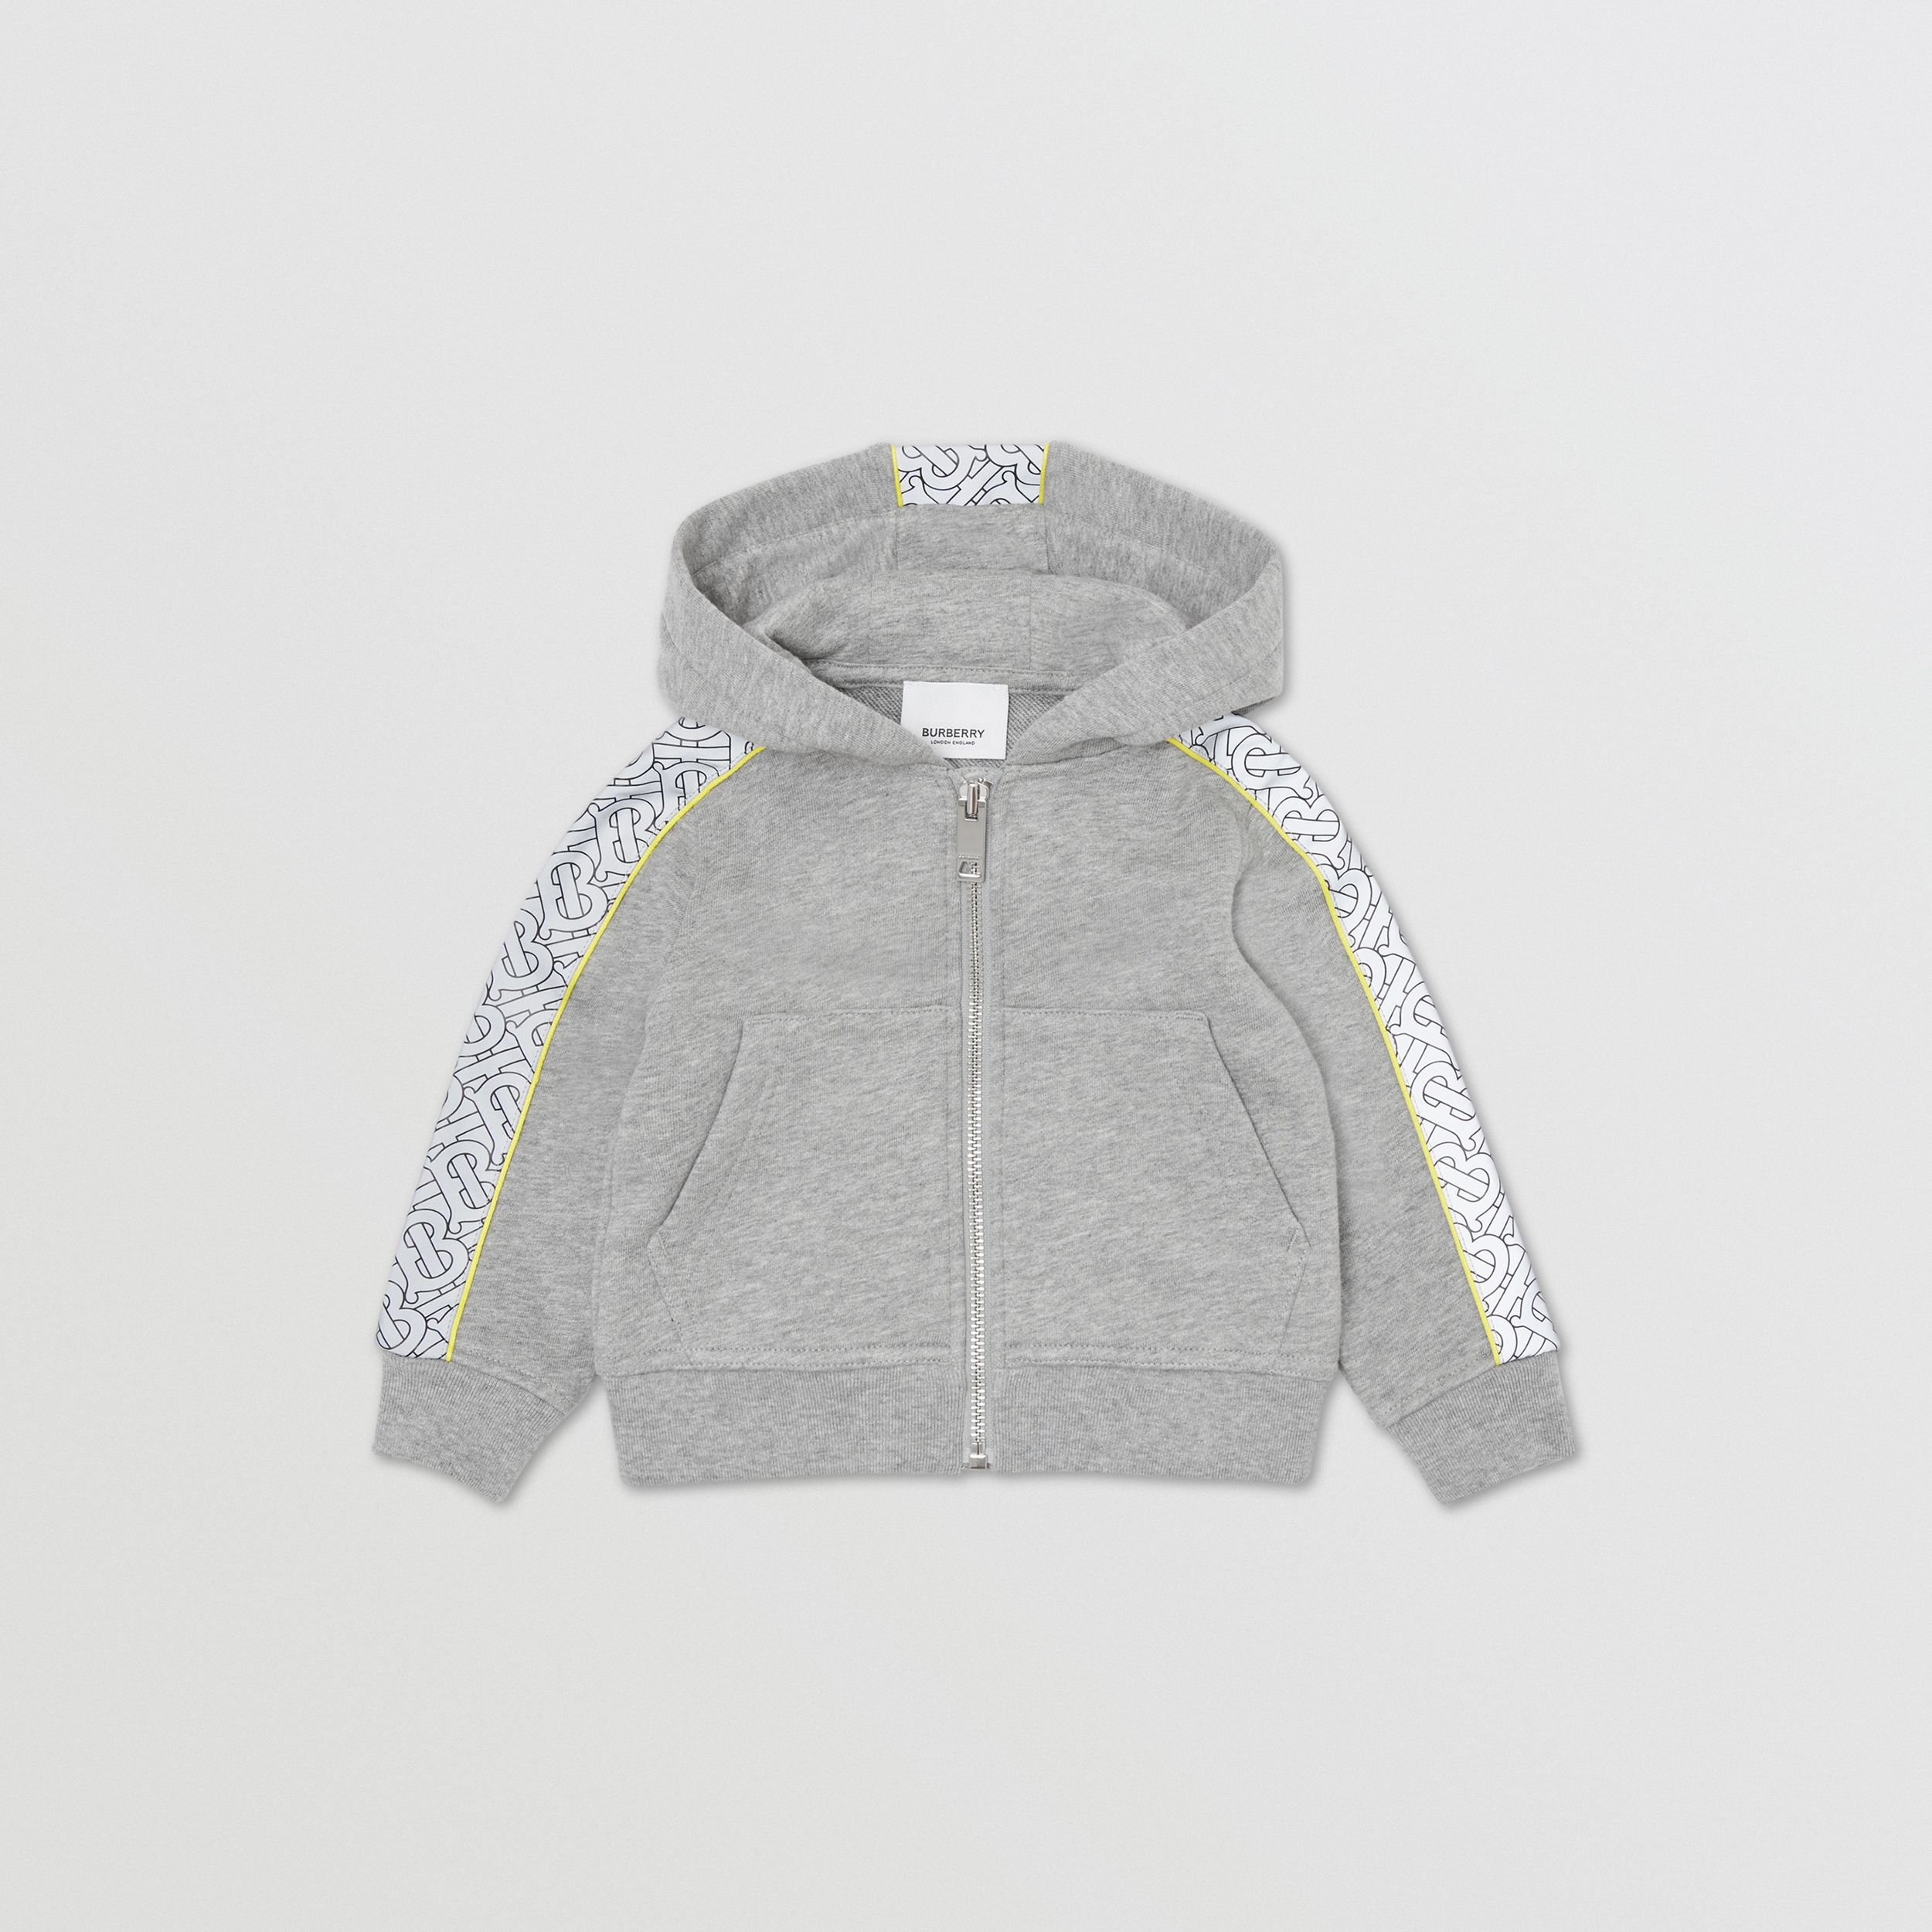 Monogram Print Panel Cotton Hooded Top in Grey Melange - Children | Burberry - 1